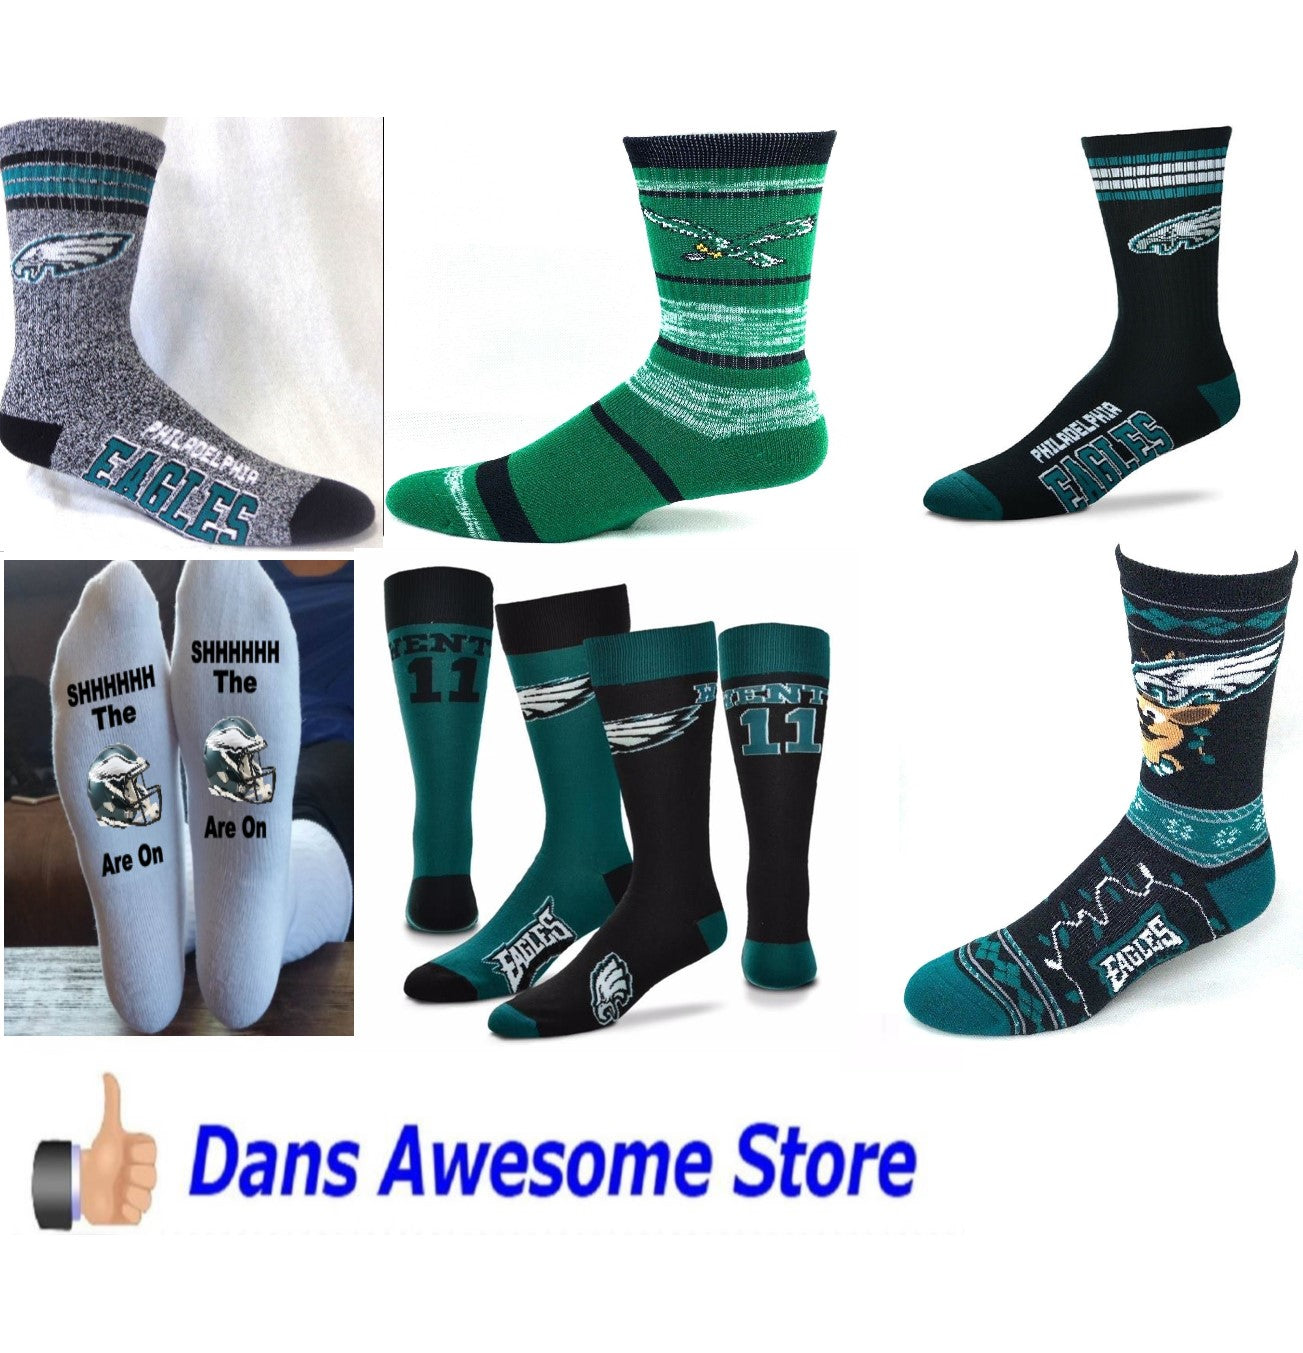 Eagles Socks - Dans Awesome Store